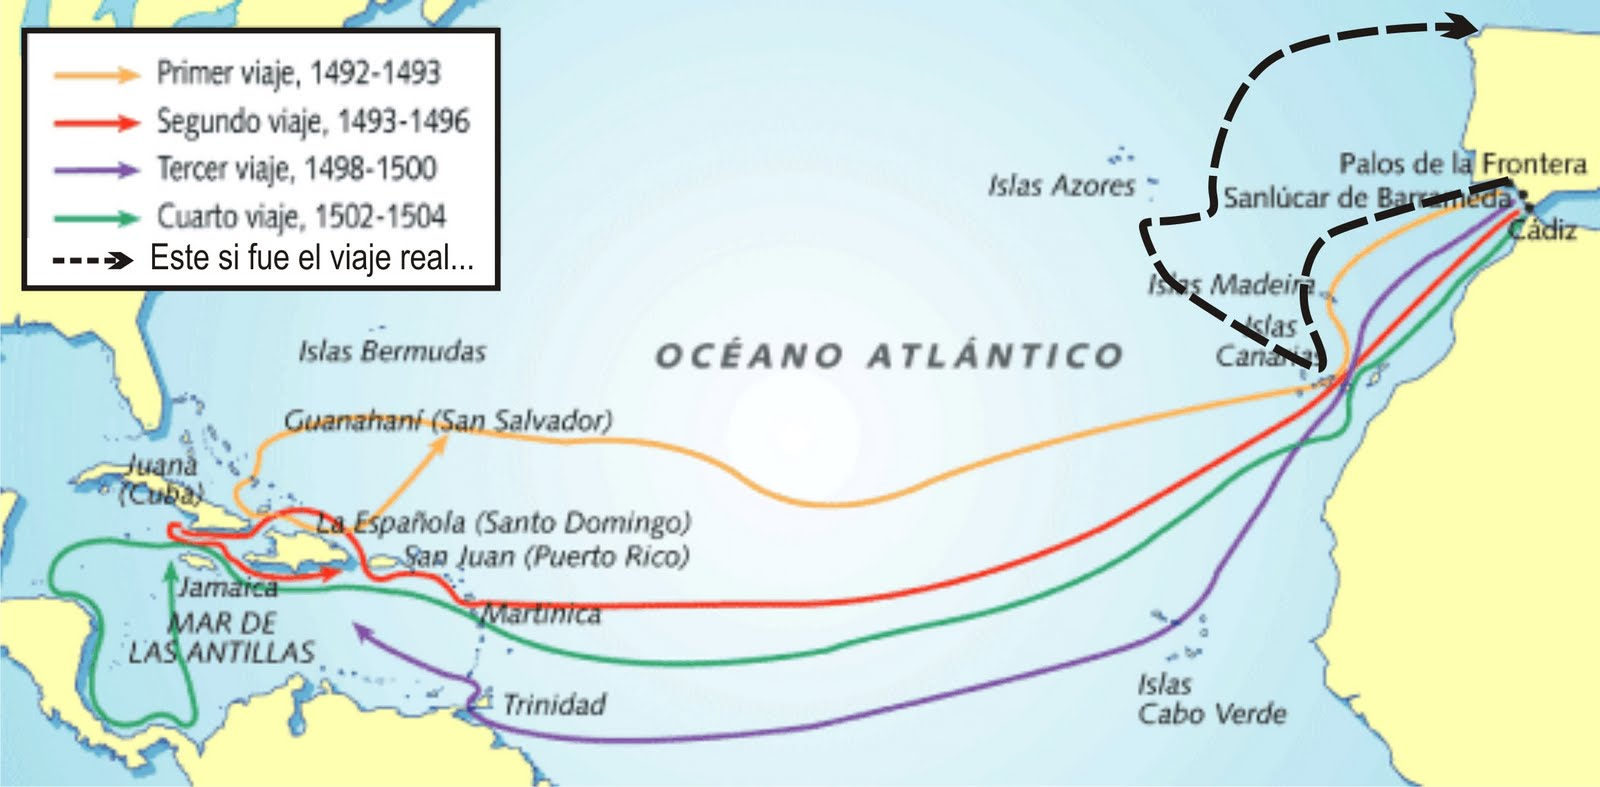 (credit: from the wikipedia article christopher columbus, image file viajes_de_colonsvg